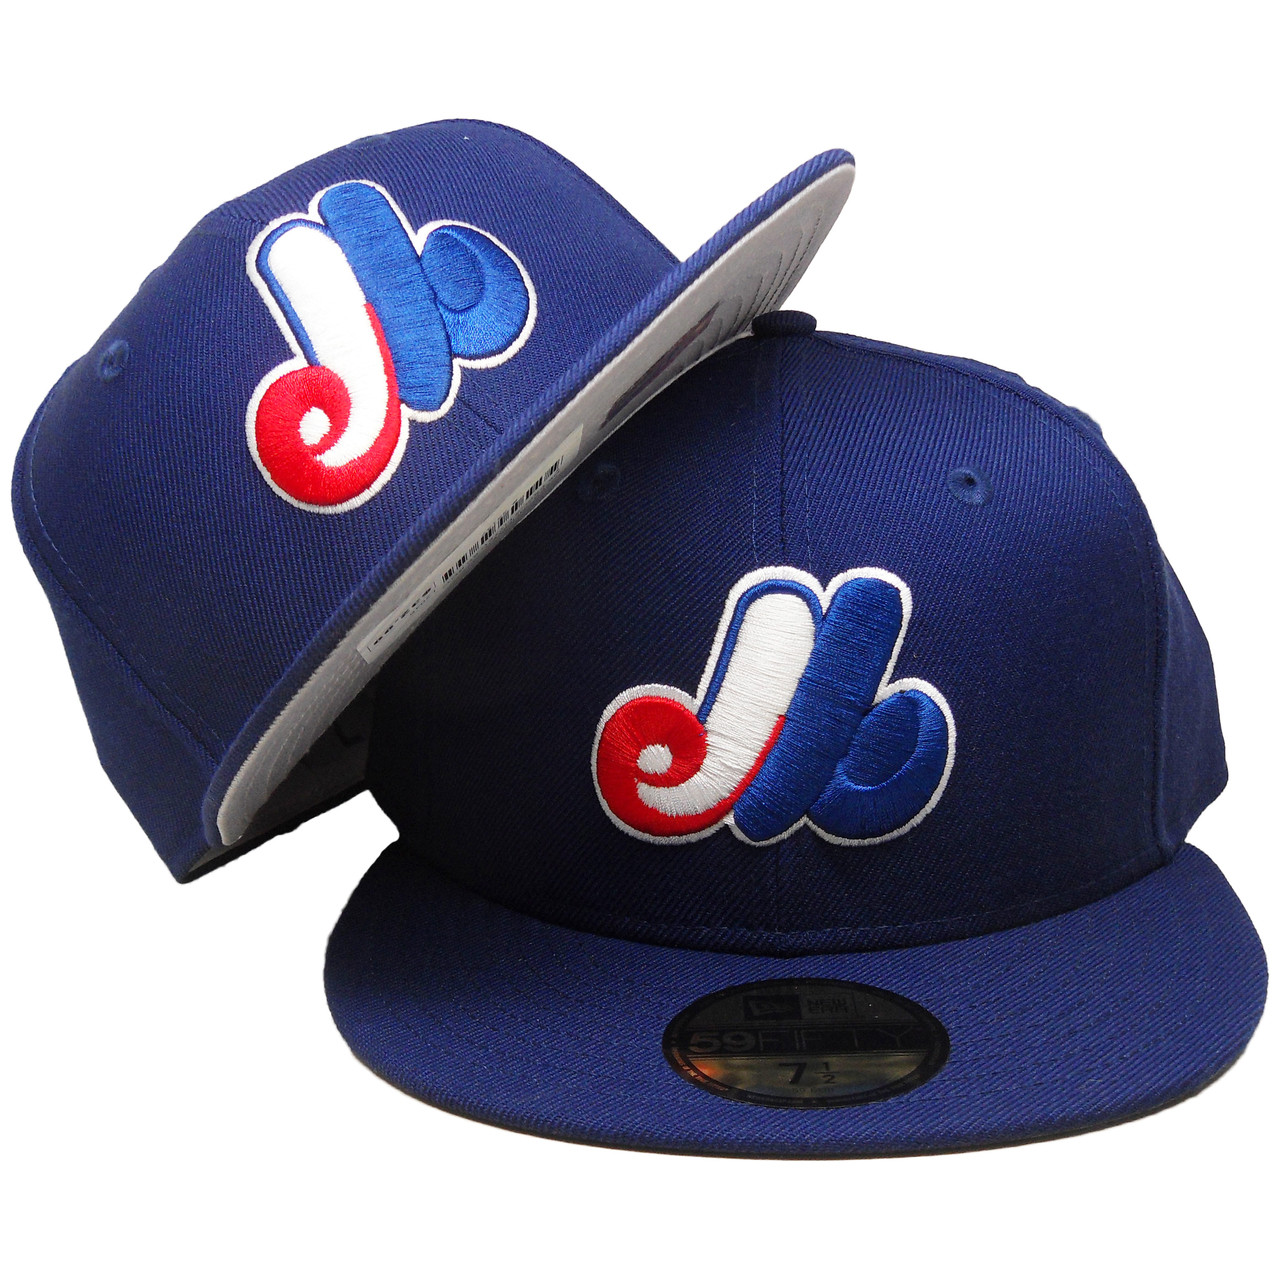 8a5ac550d Montreal Expos New Era Custom 59Fifty Fitted Hat - Dark Royal, White, Red